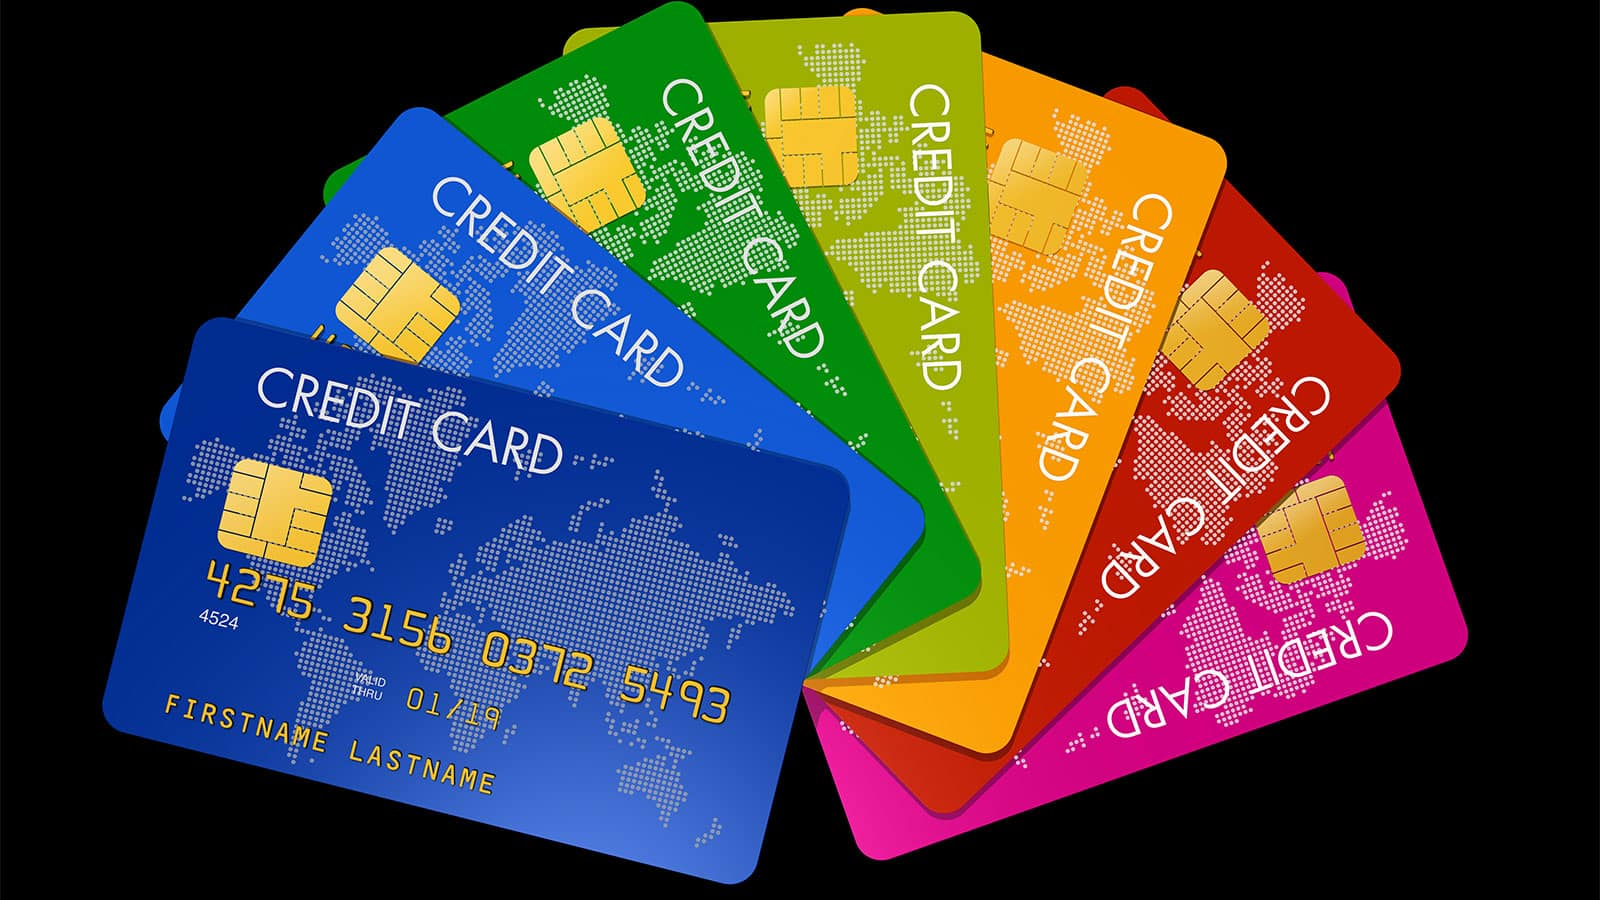 Eddy & Schein Group offers assistance with managing credit cards.